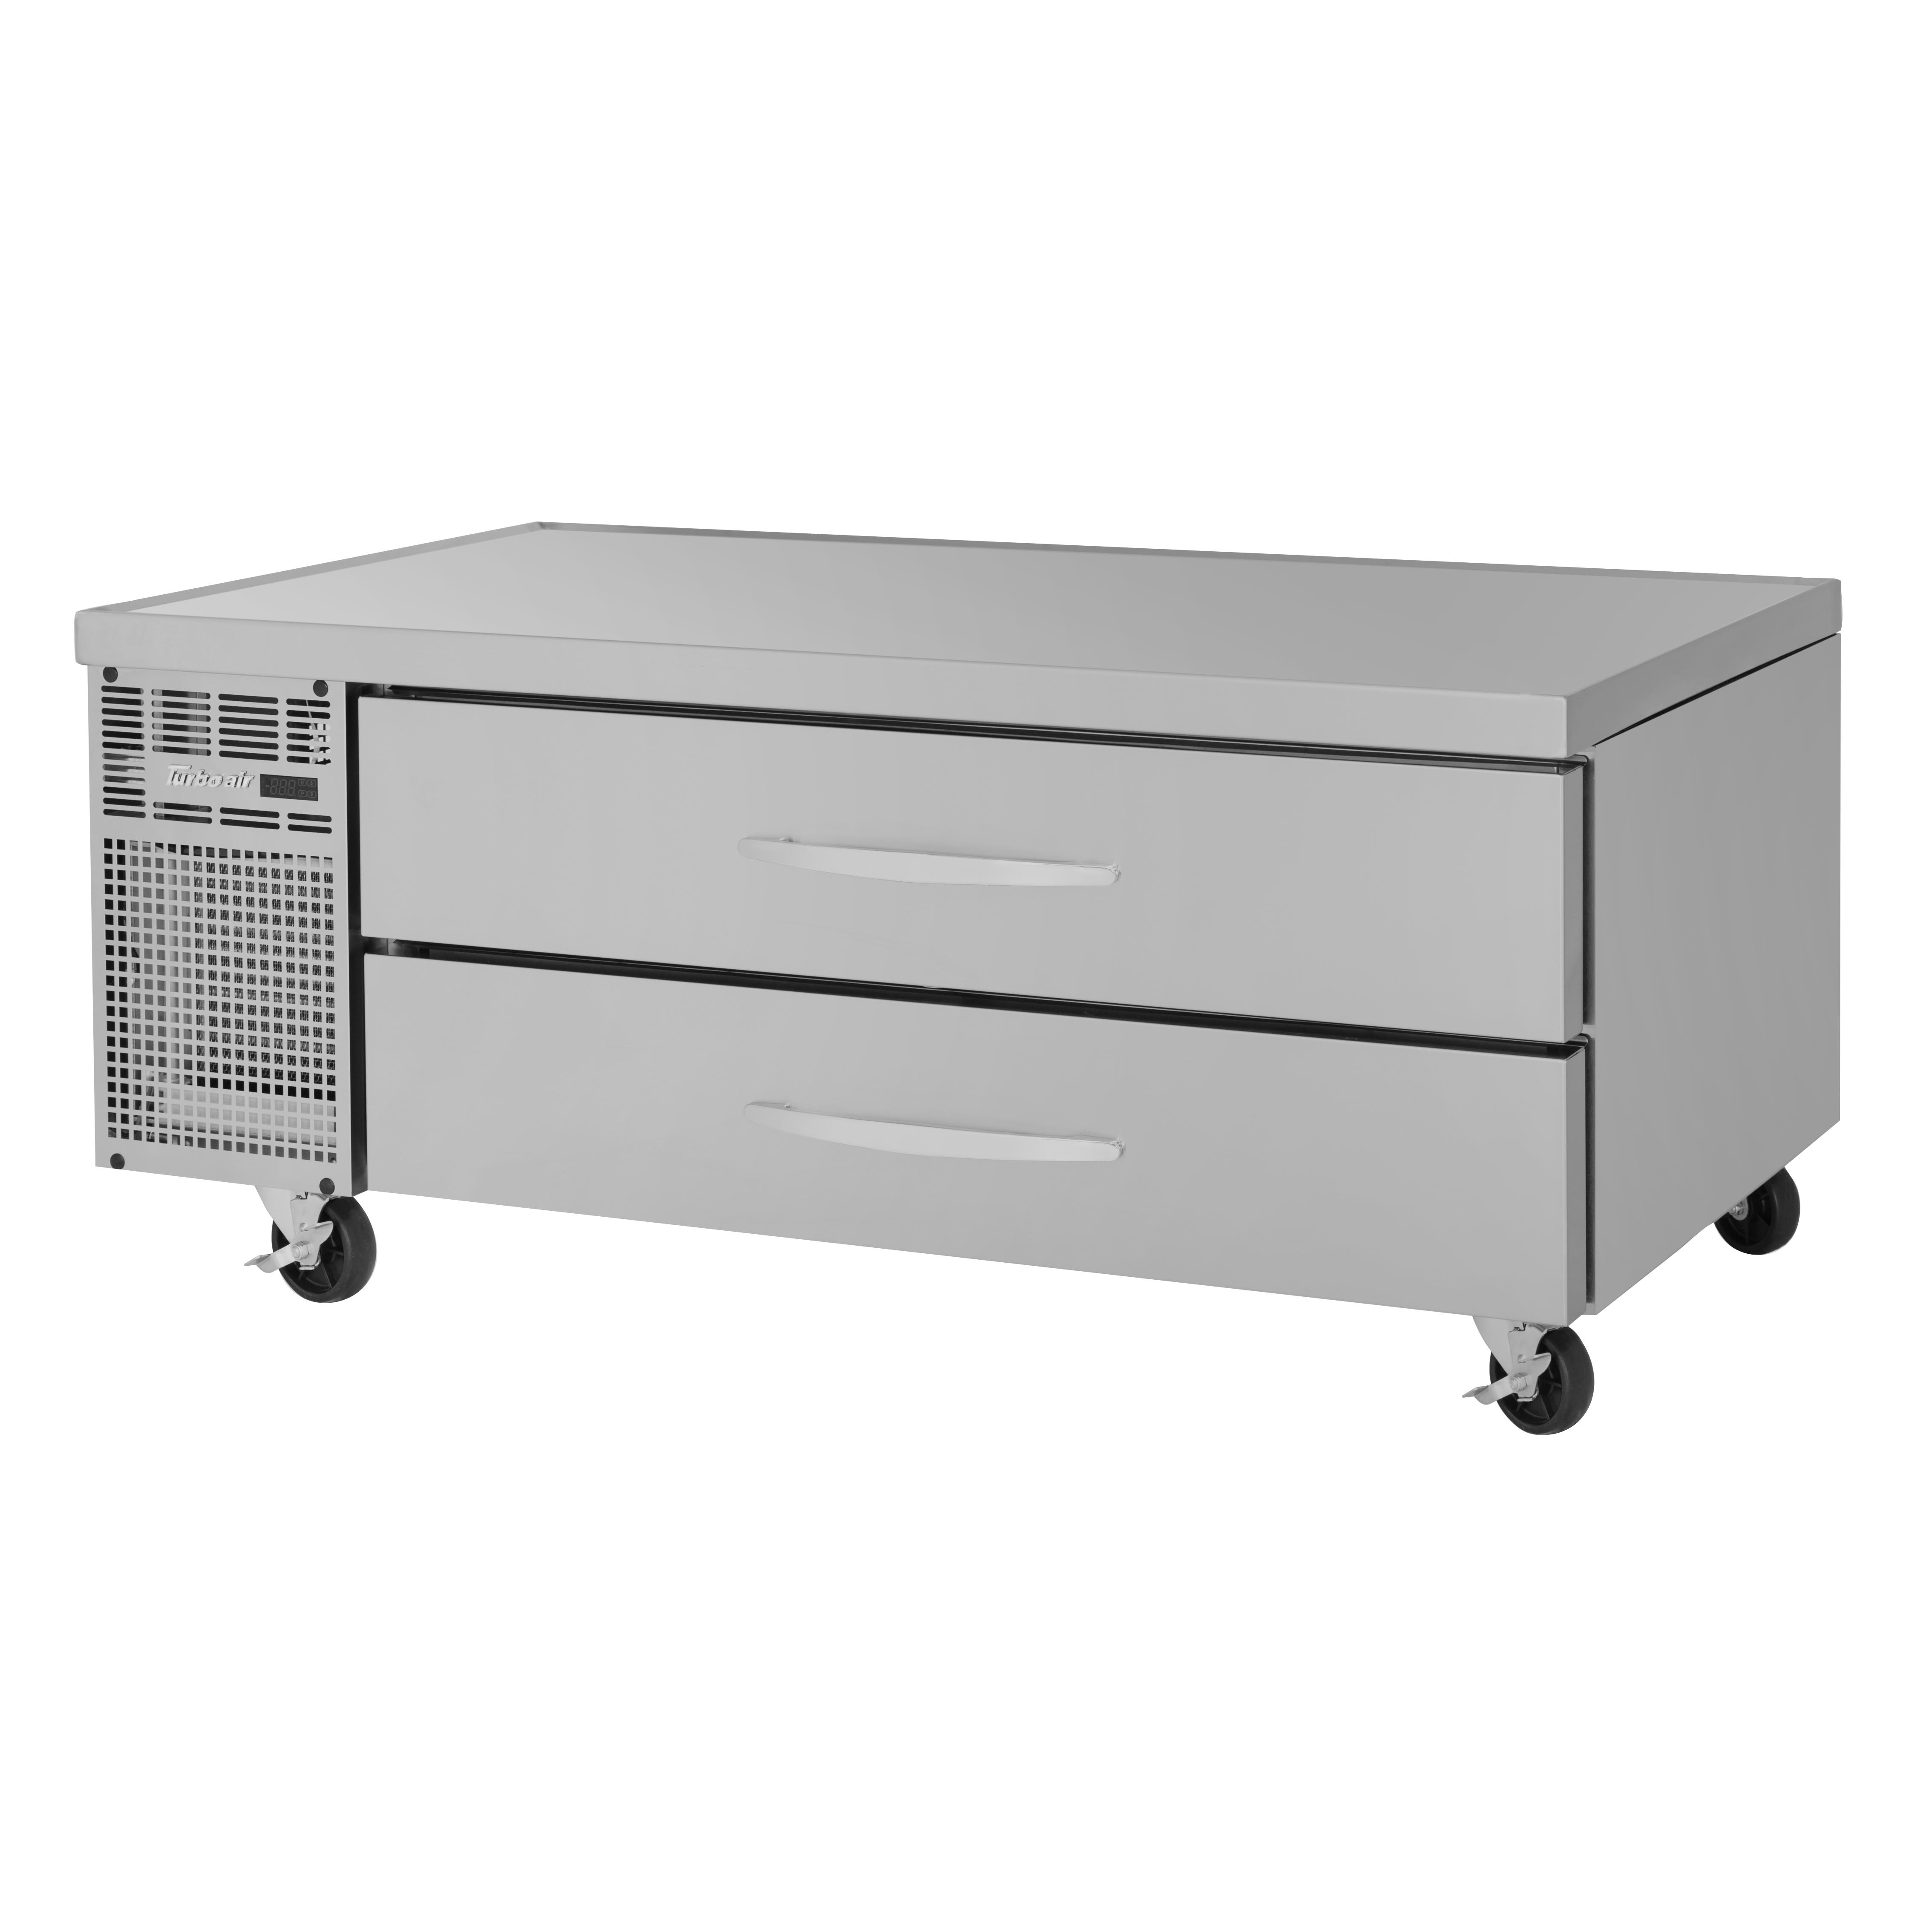 Turbo Air PRCBE-60R-N equipment stand, refrigerated base